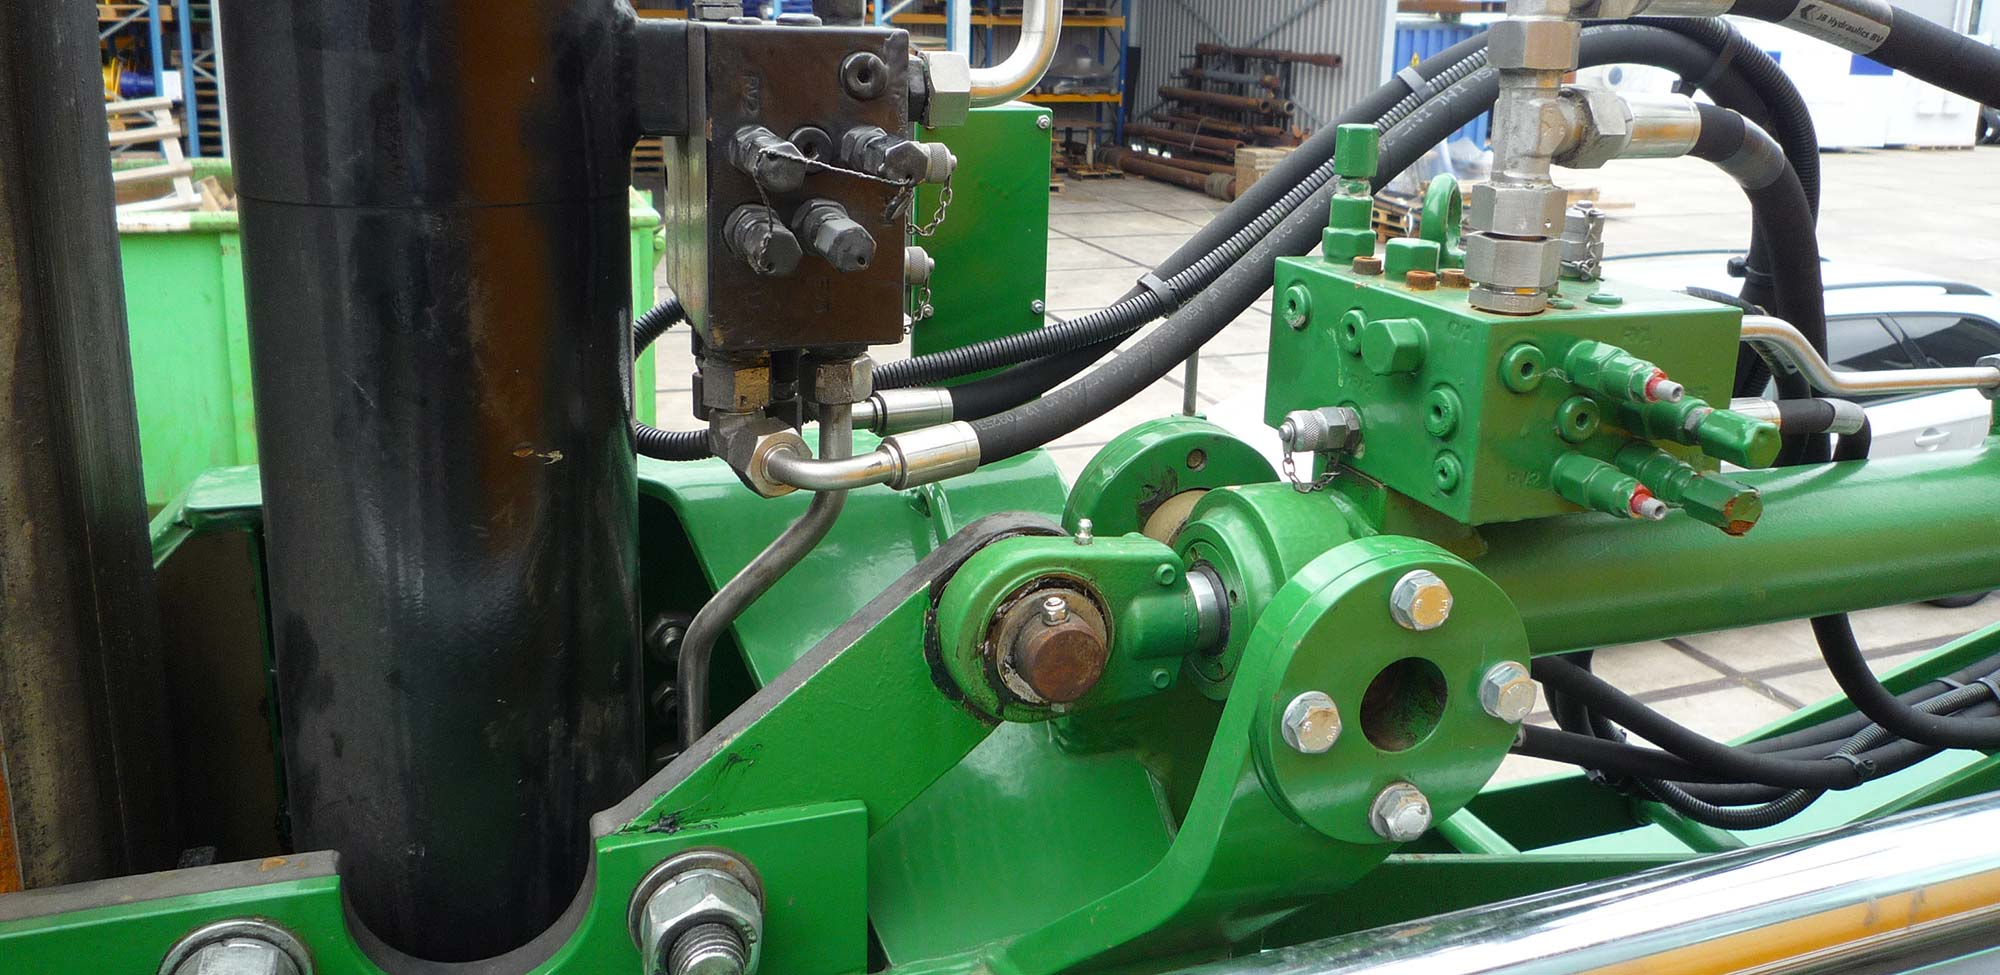 Hydraulic cylinder and manifolds